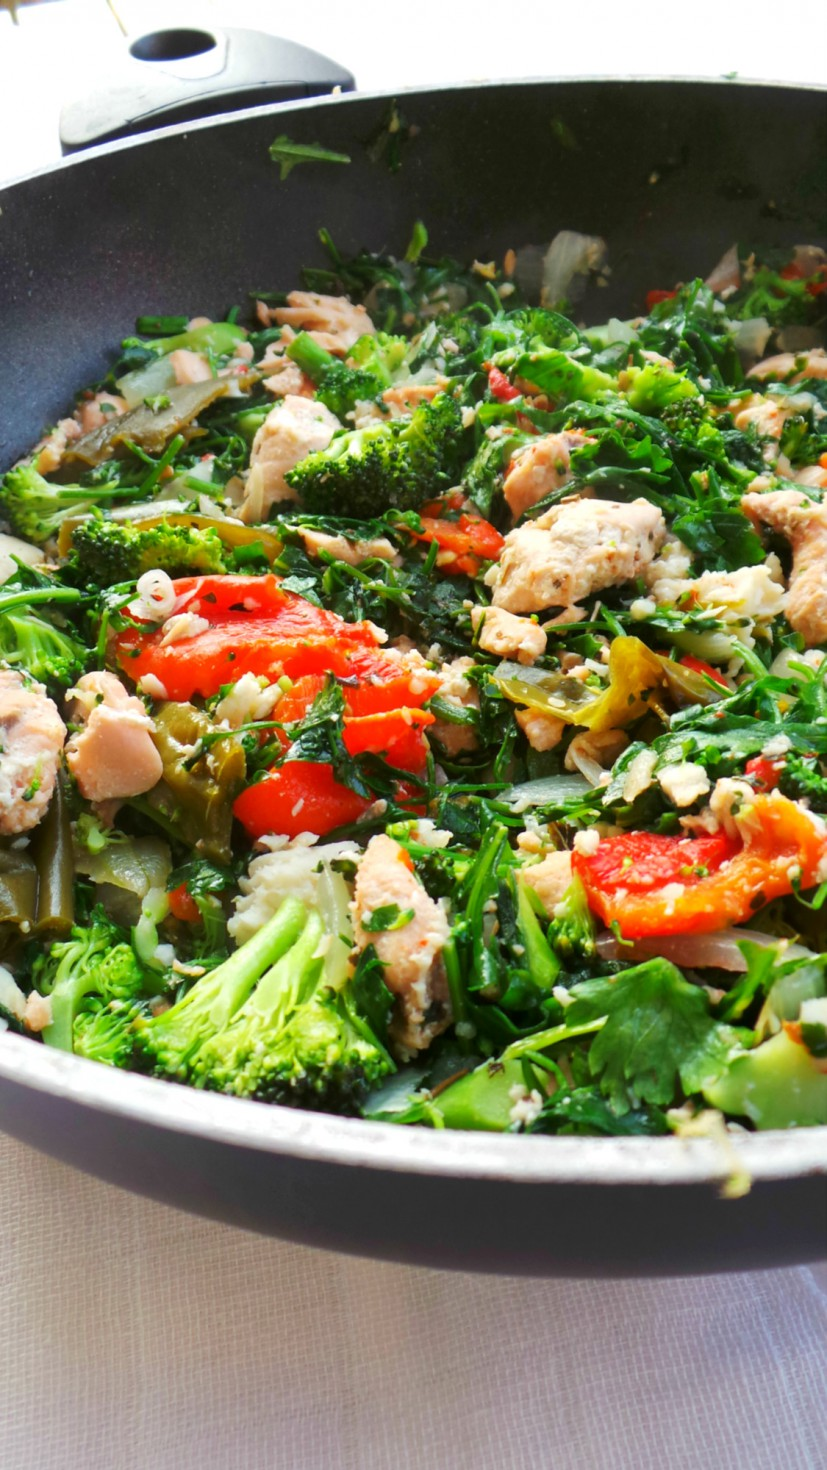 Flavorful Fish and Vegetables